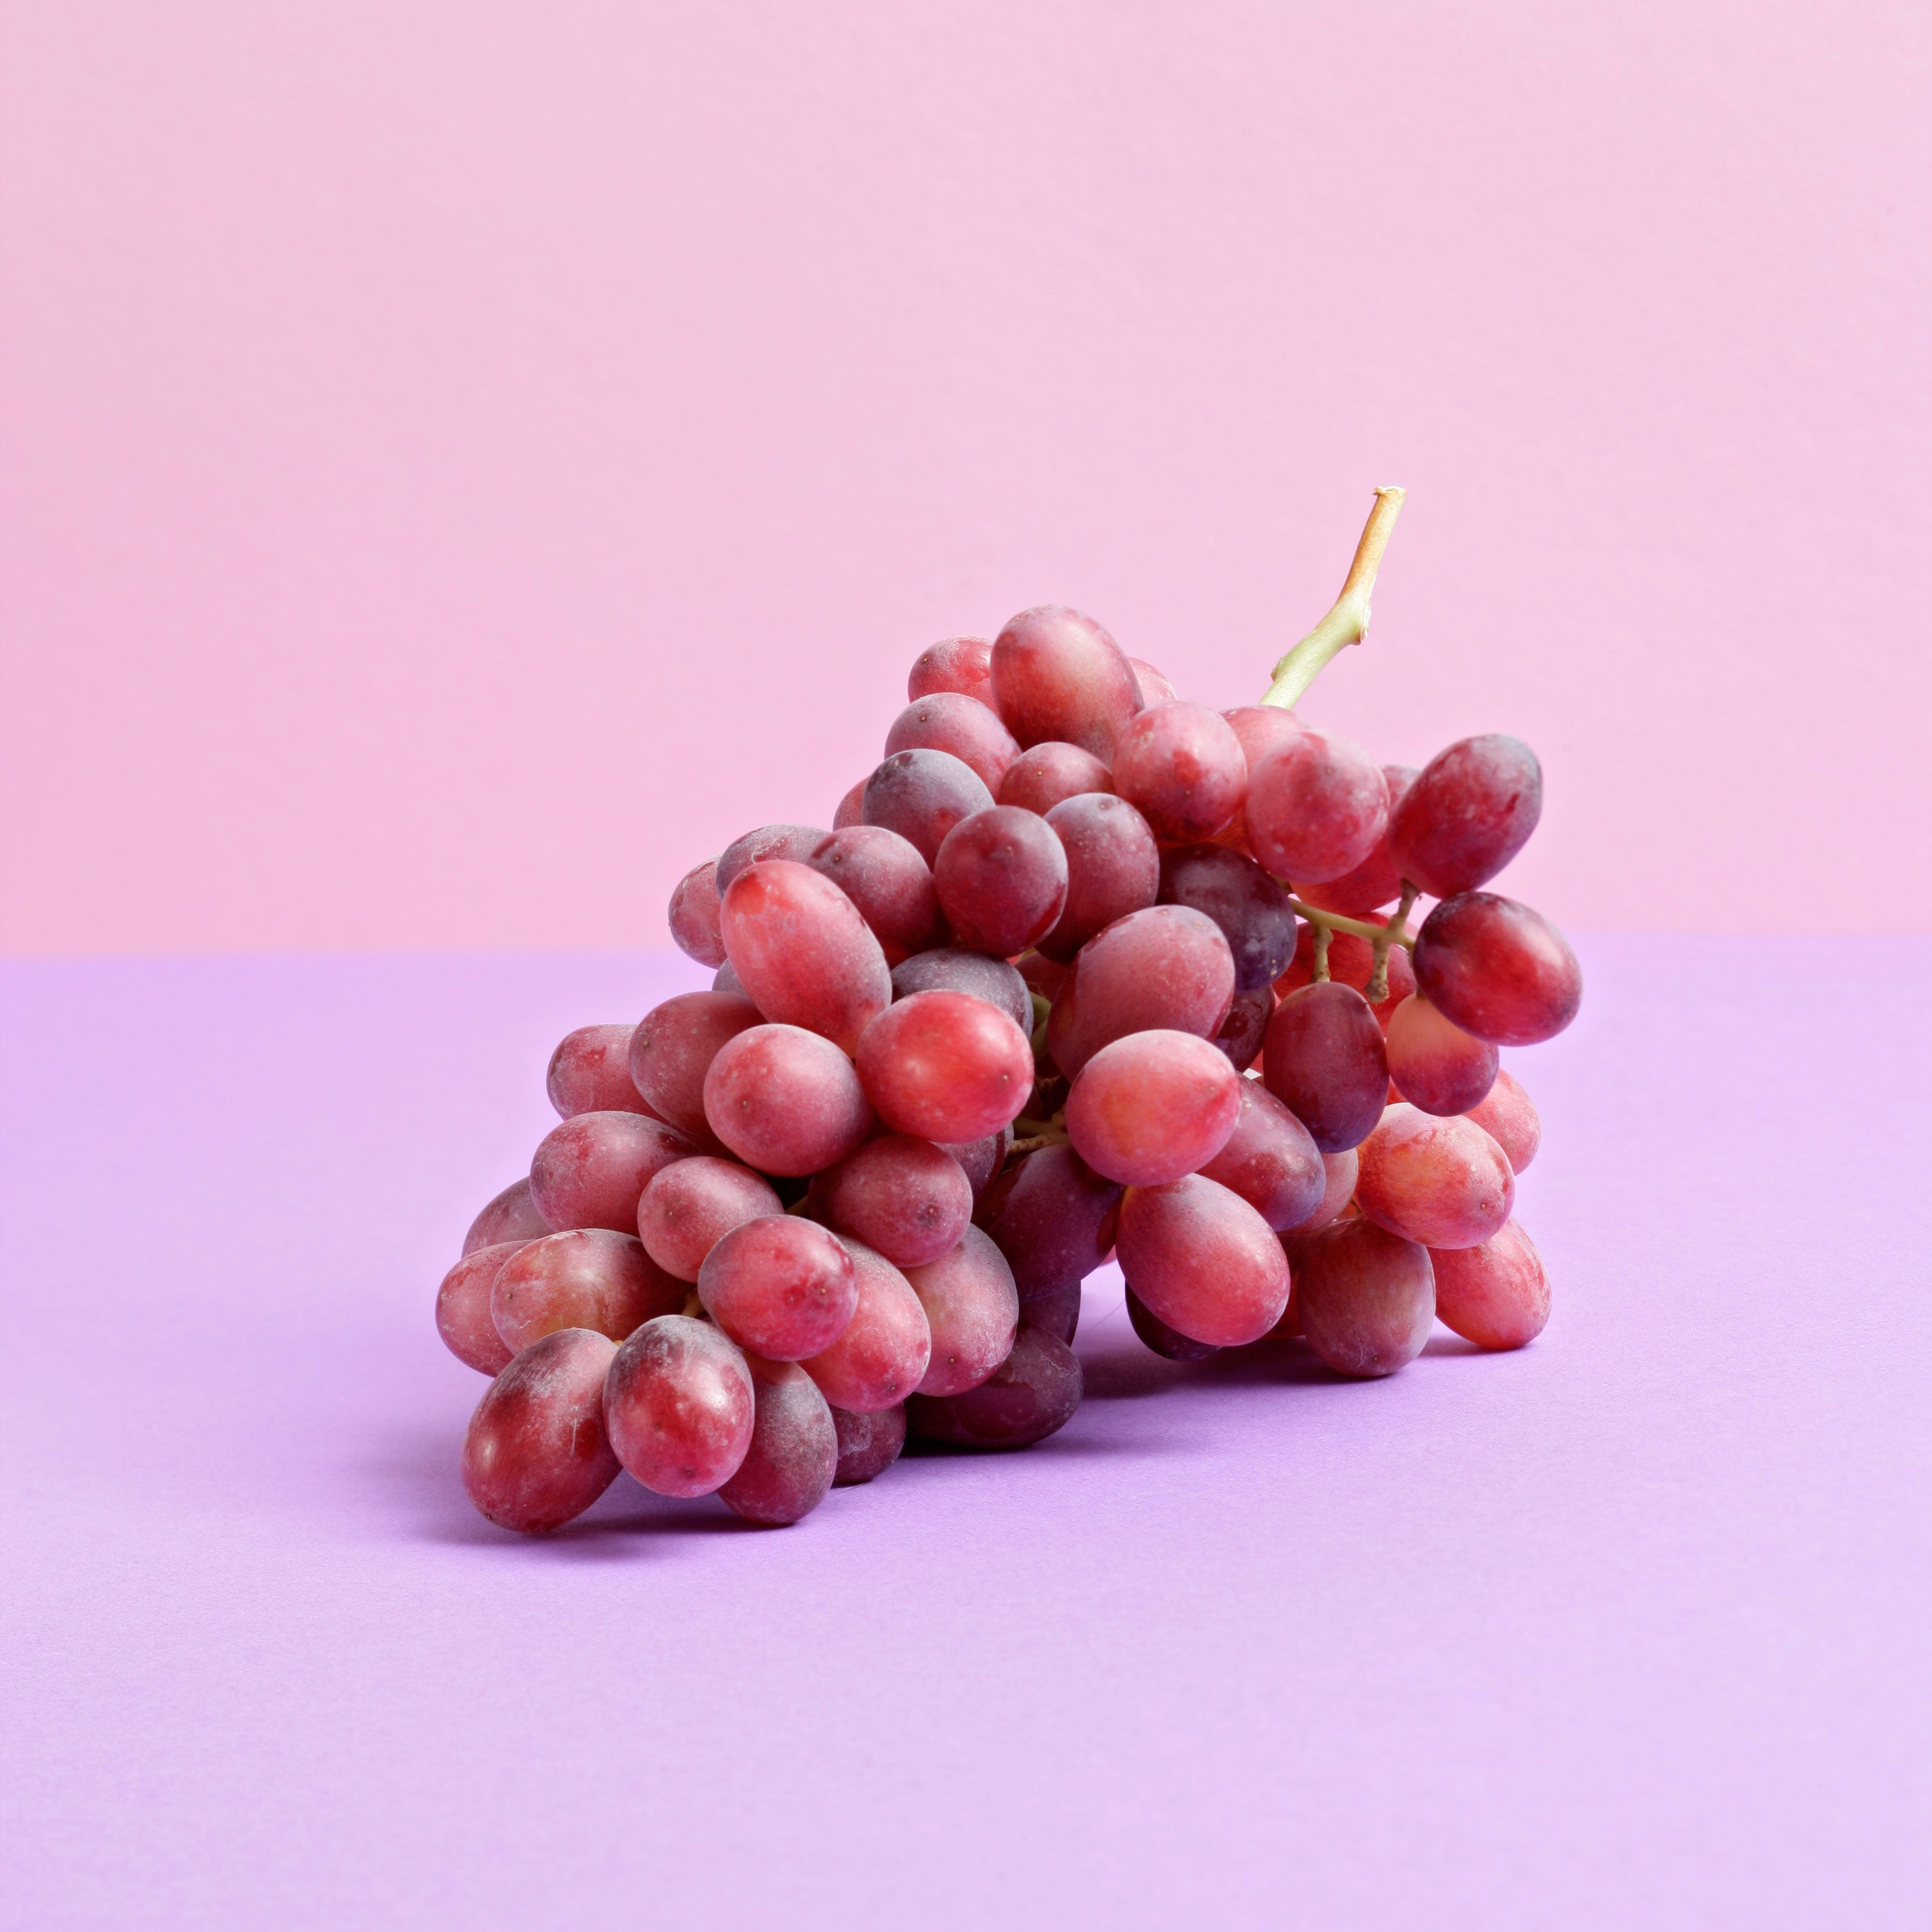 fruits-good-for-sex